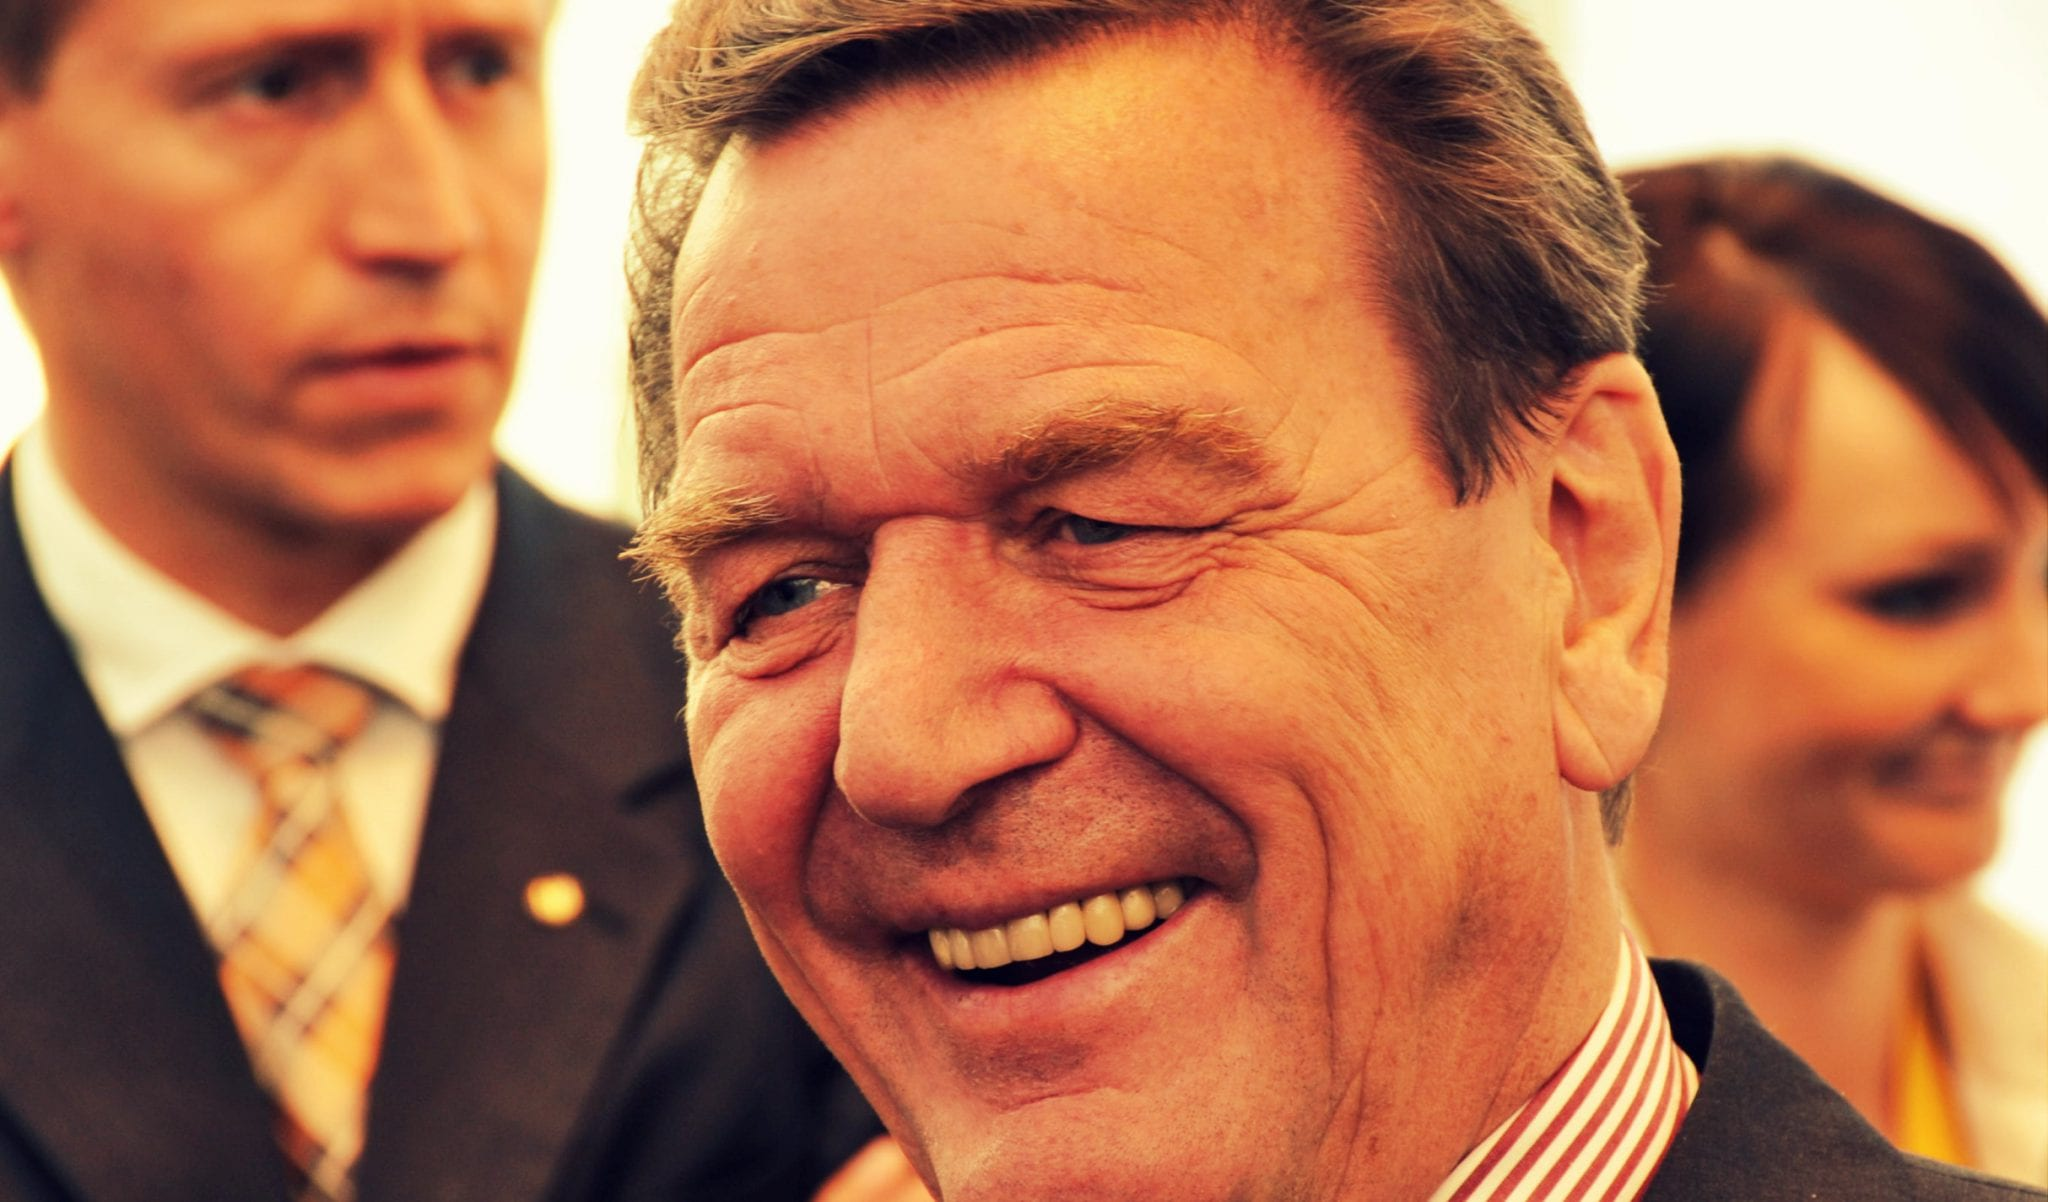 Gerhard-Schroeder-Germany-Getty Crimea reunification is Legal: